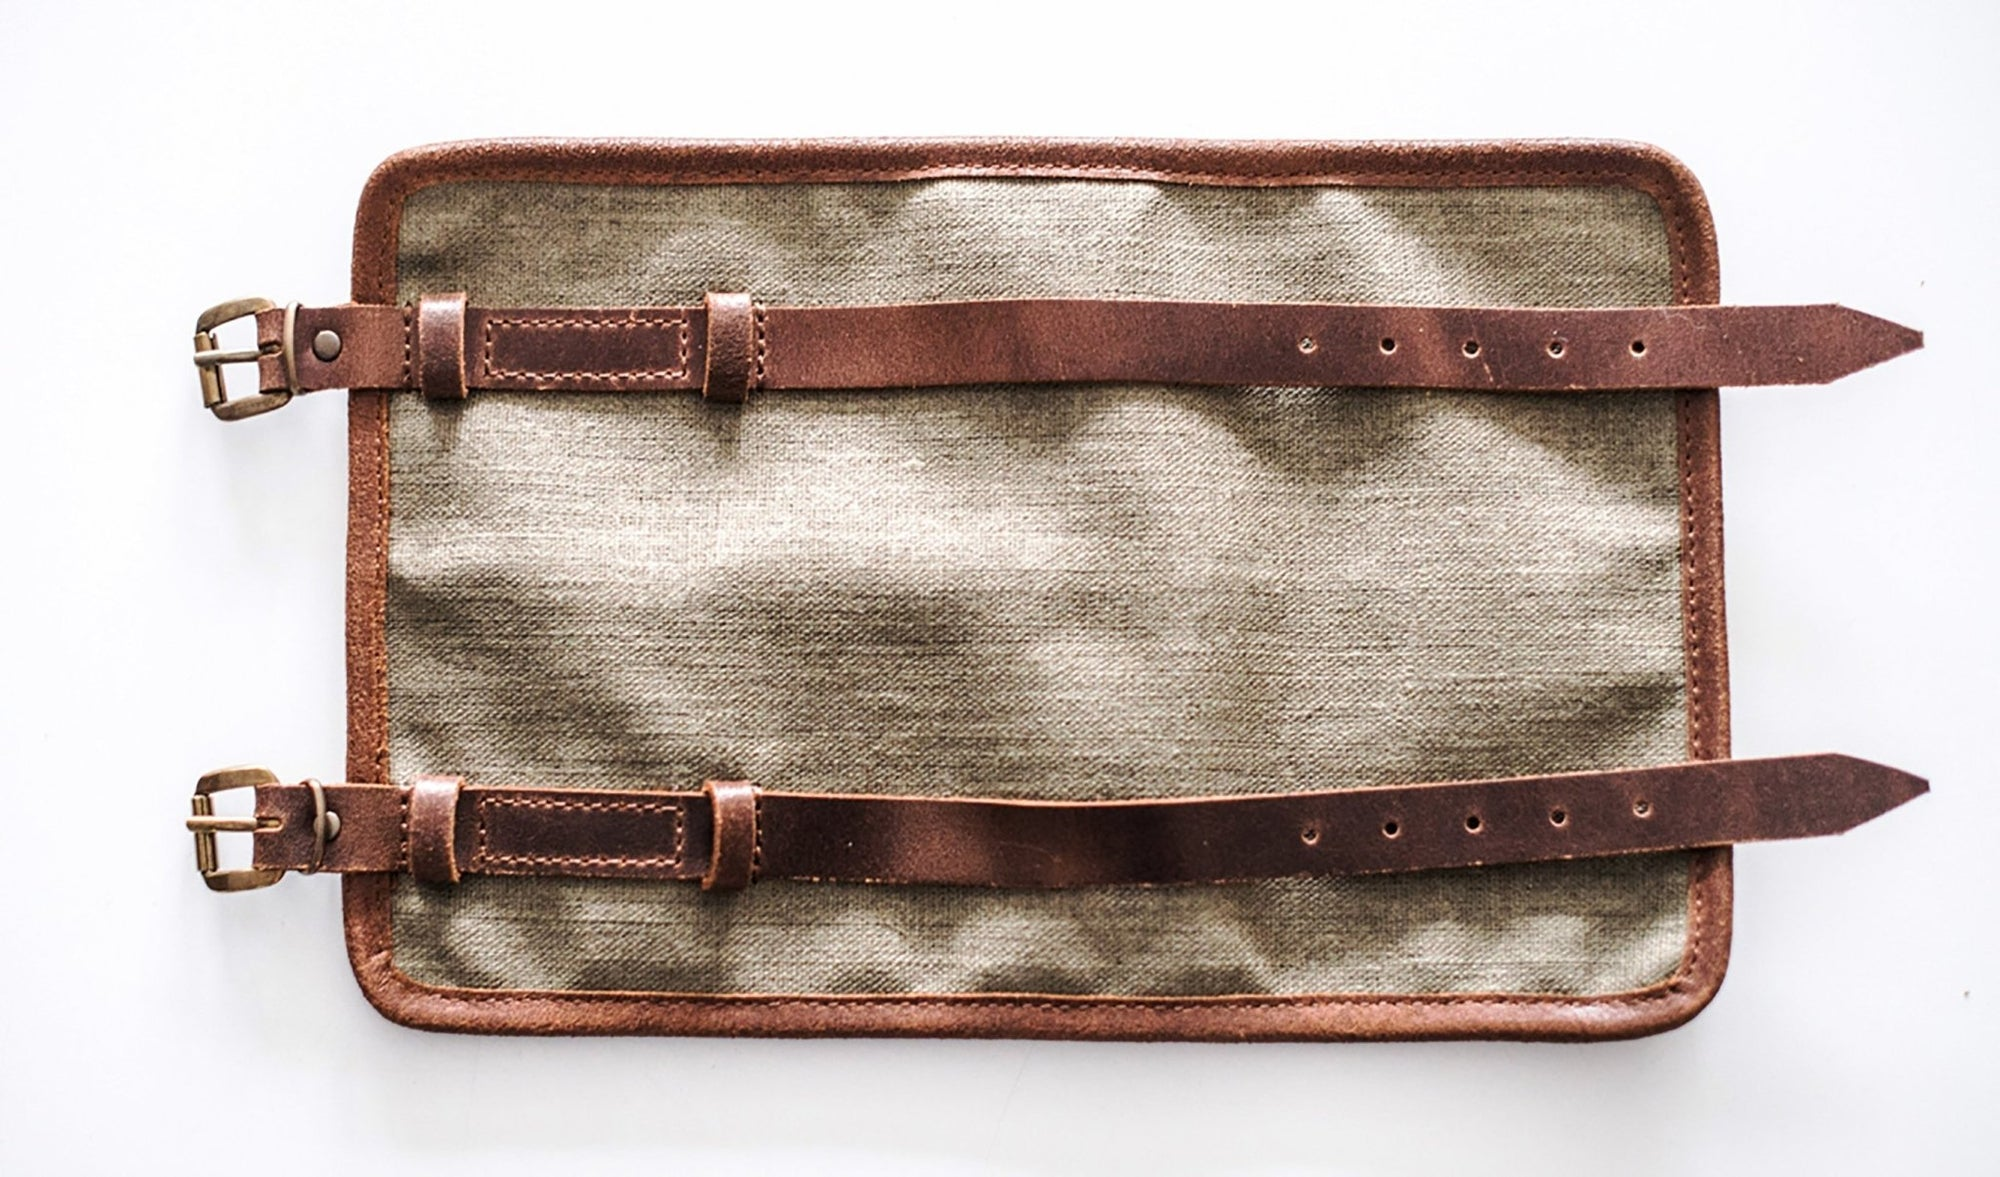 Crave - Crave Canvas Tool Roll - Gepäck - Salt Flats Clothing